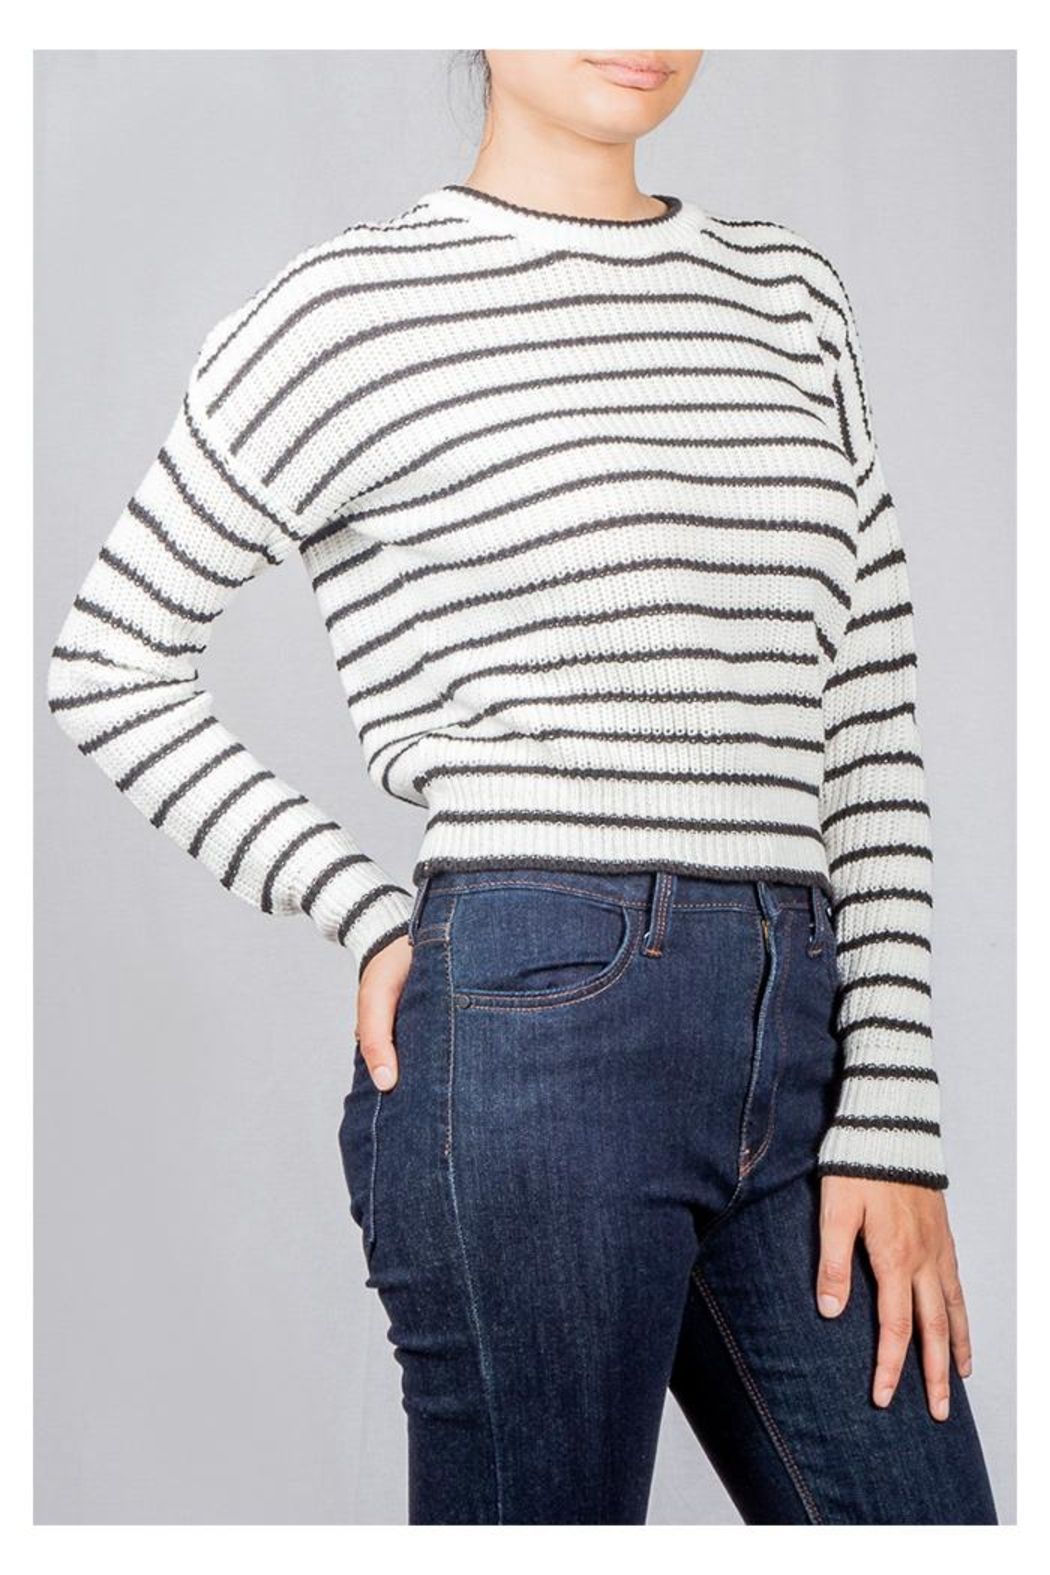 Audrey 3+1 Striped Knit Sweater - Side Cropped Image